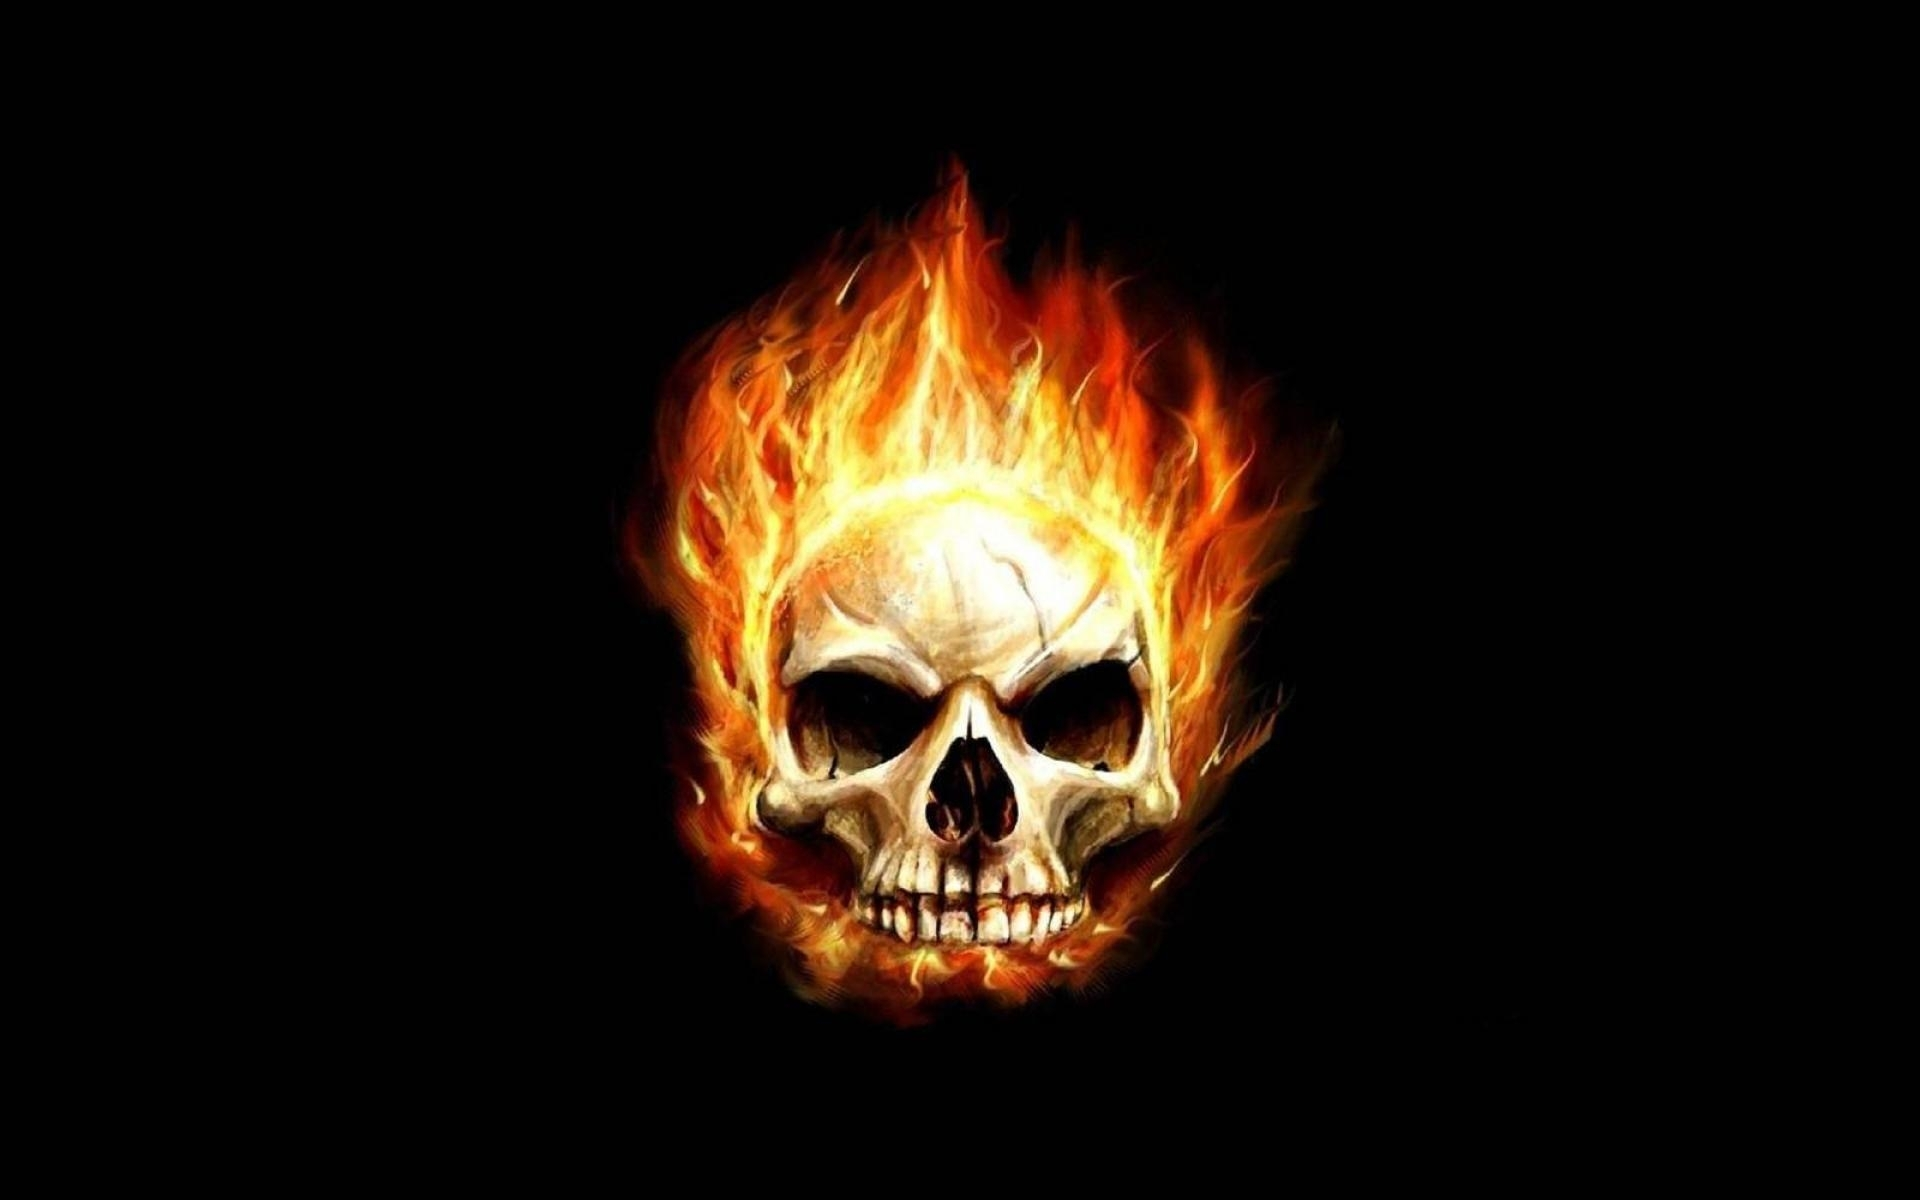 skull on fire wallpapers - wallpaper cave